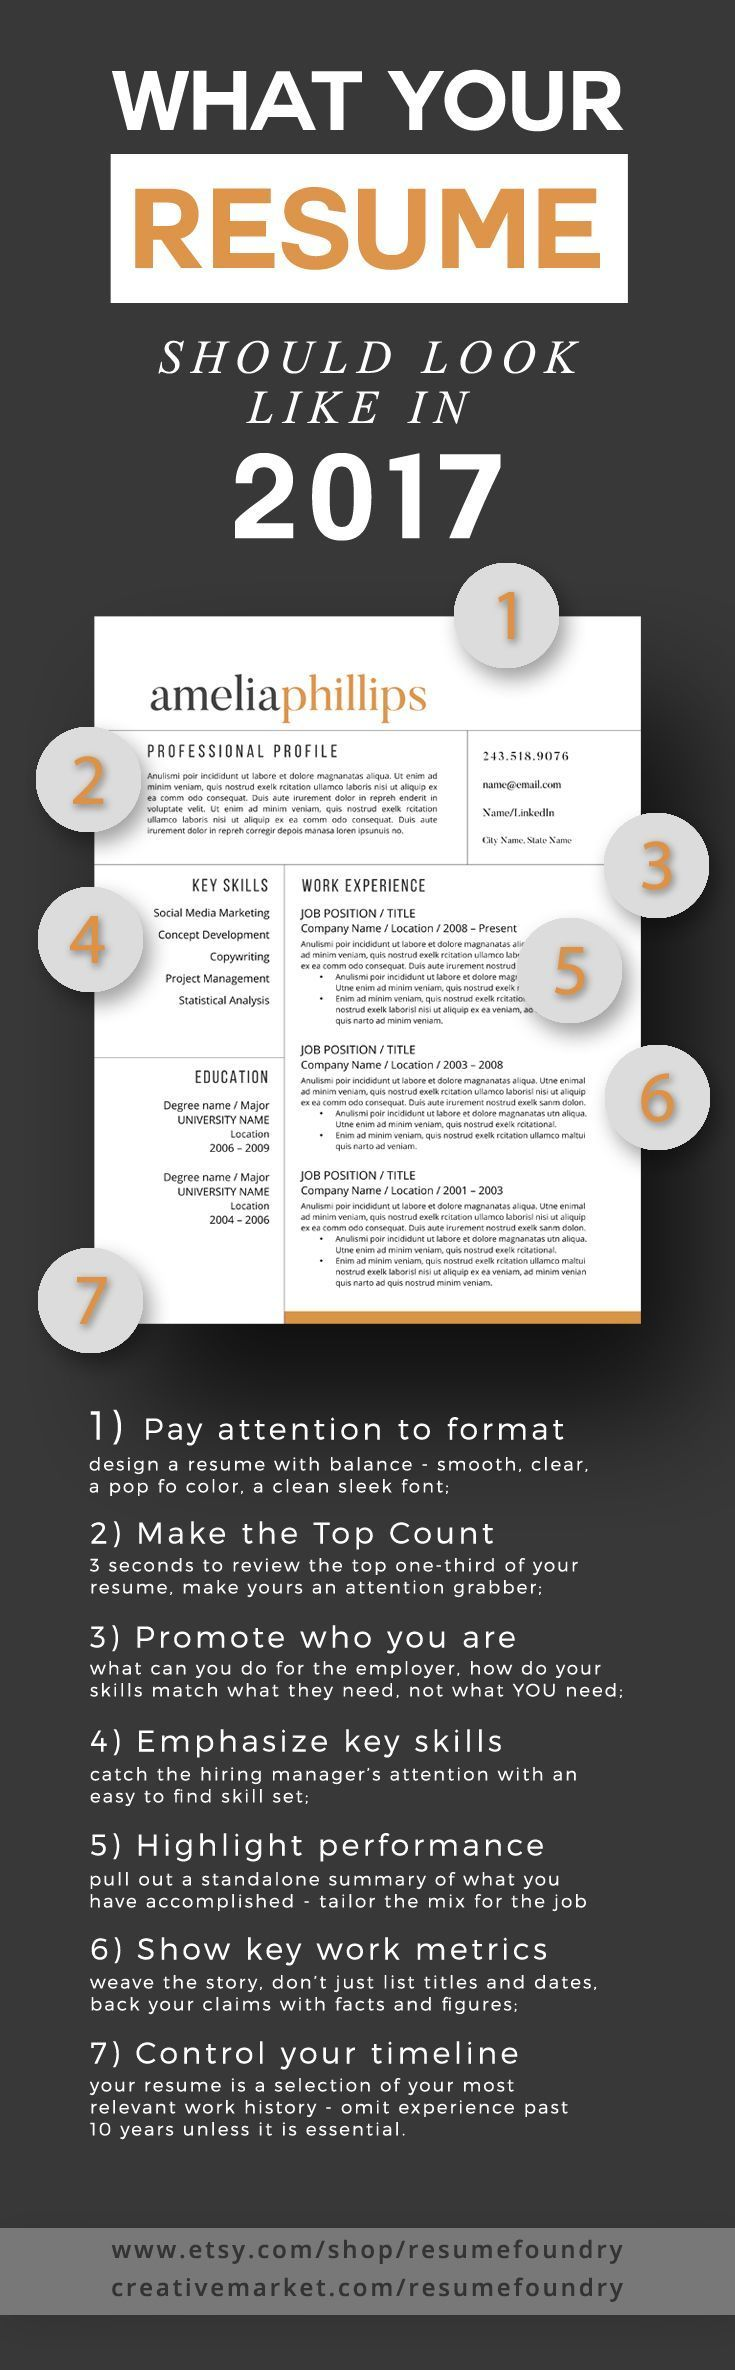 Chronological Resume Samples%0A Resume tips  what your resume should look like in